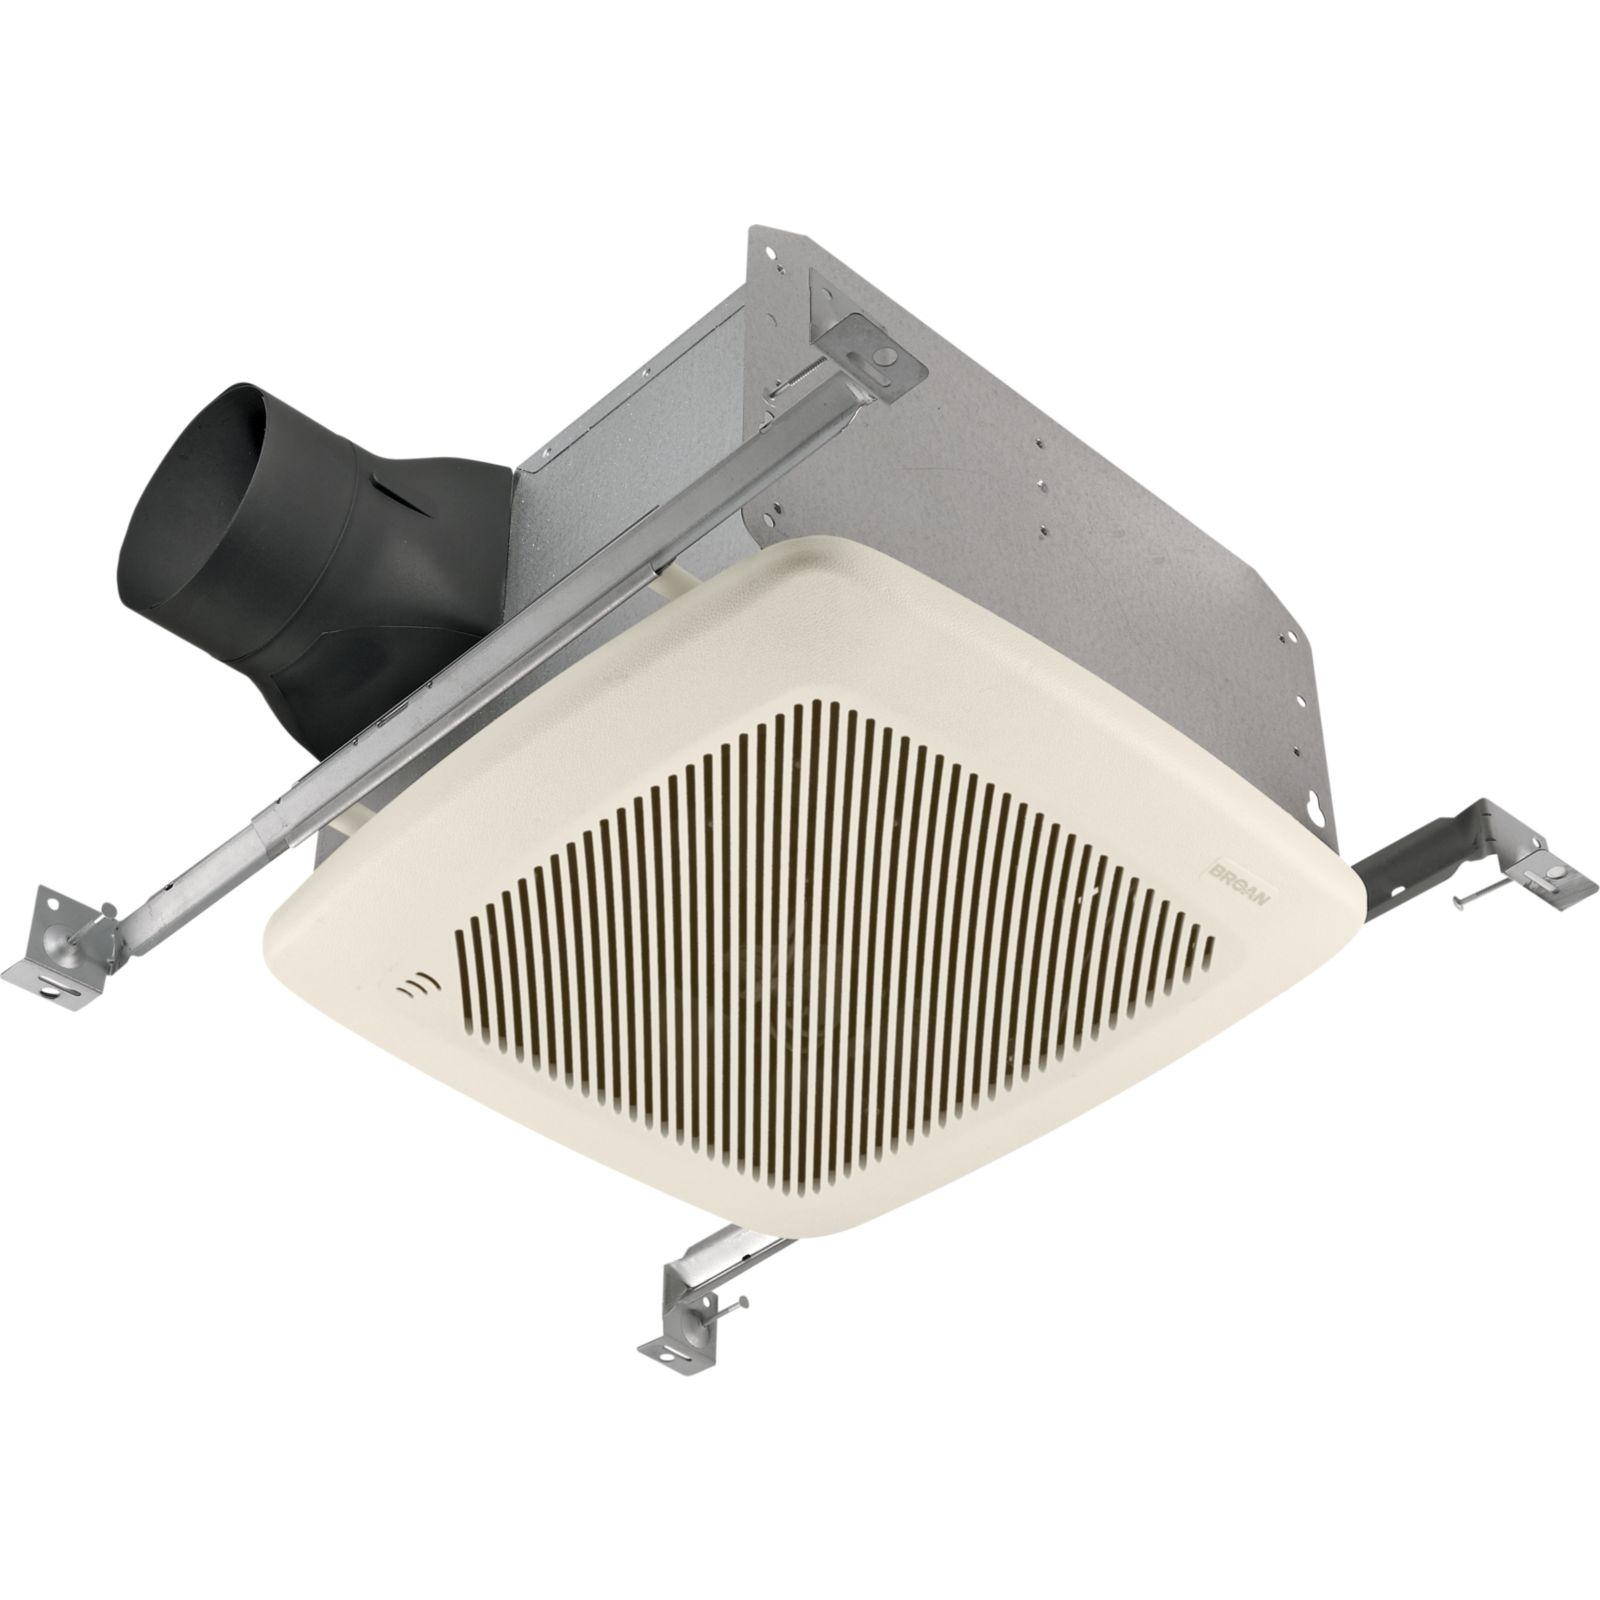 Broan QTRE100S - 100 CFM, 1.5 Sones, Humidity Sensing Fan, Energy Star Qualified